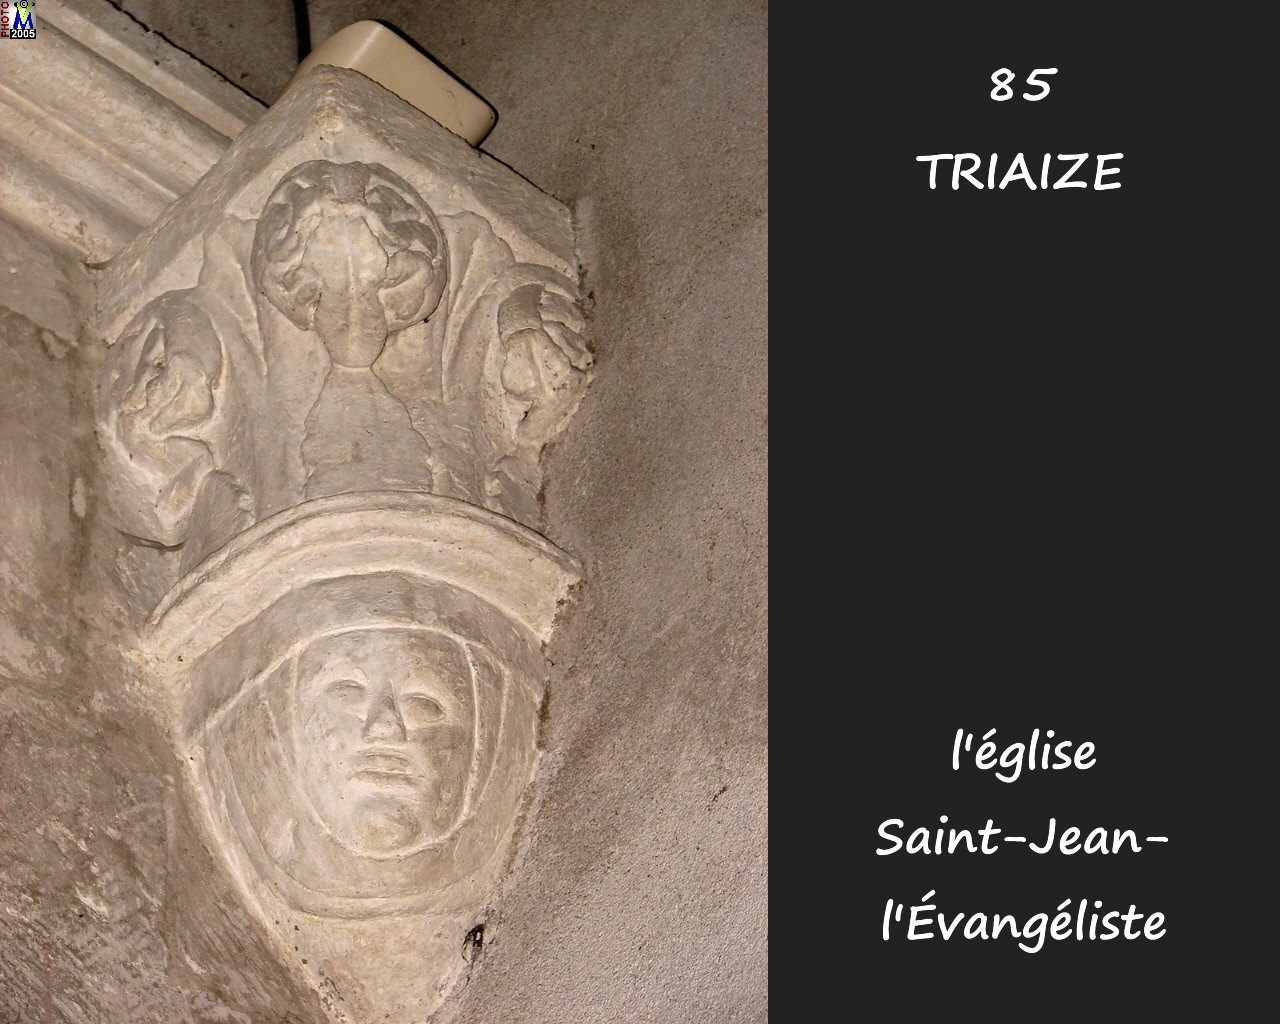 85TRIAIZE_eglise_206.jpg